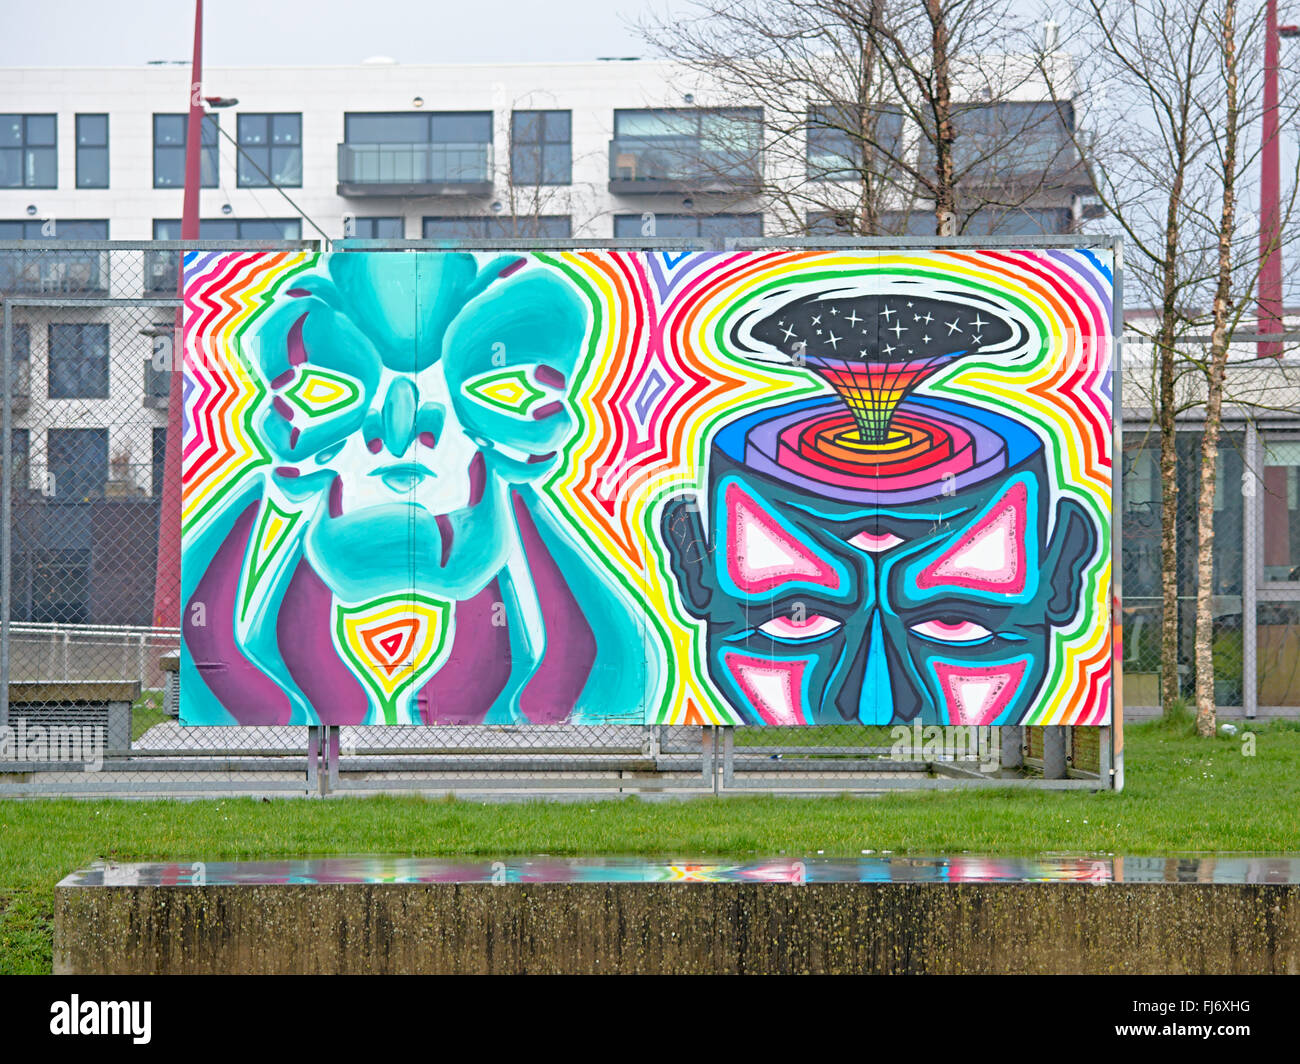 Psychedelic graffiti depicting two heads with colouful aura and star sky coming out of one, found at Minus One venue, - Stock Image